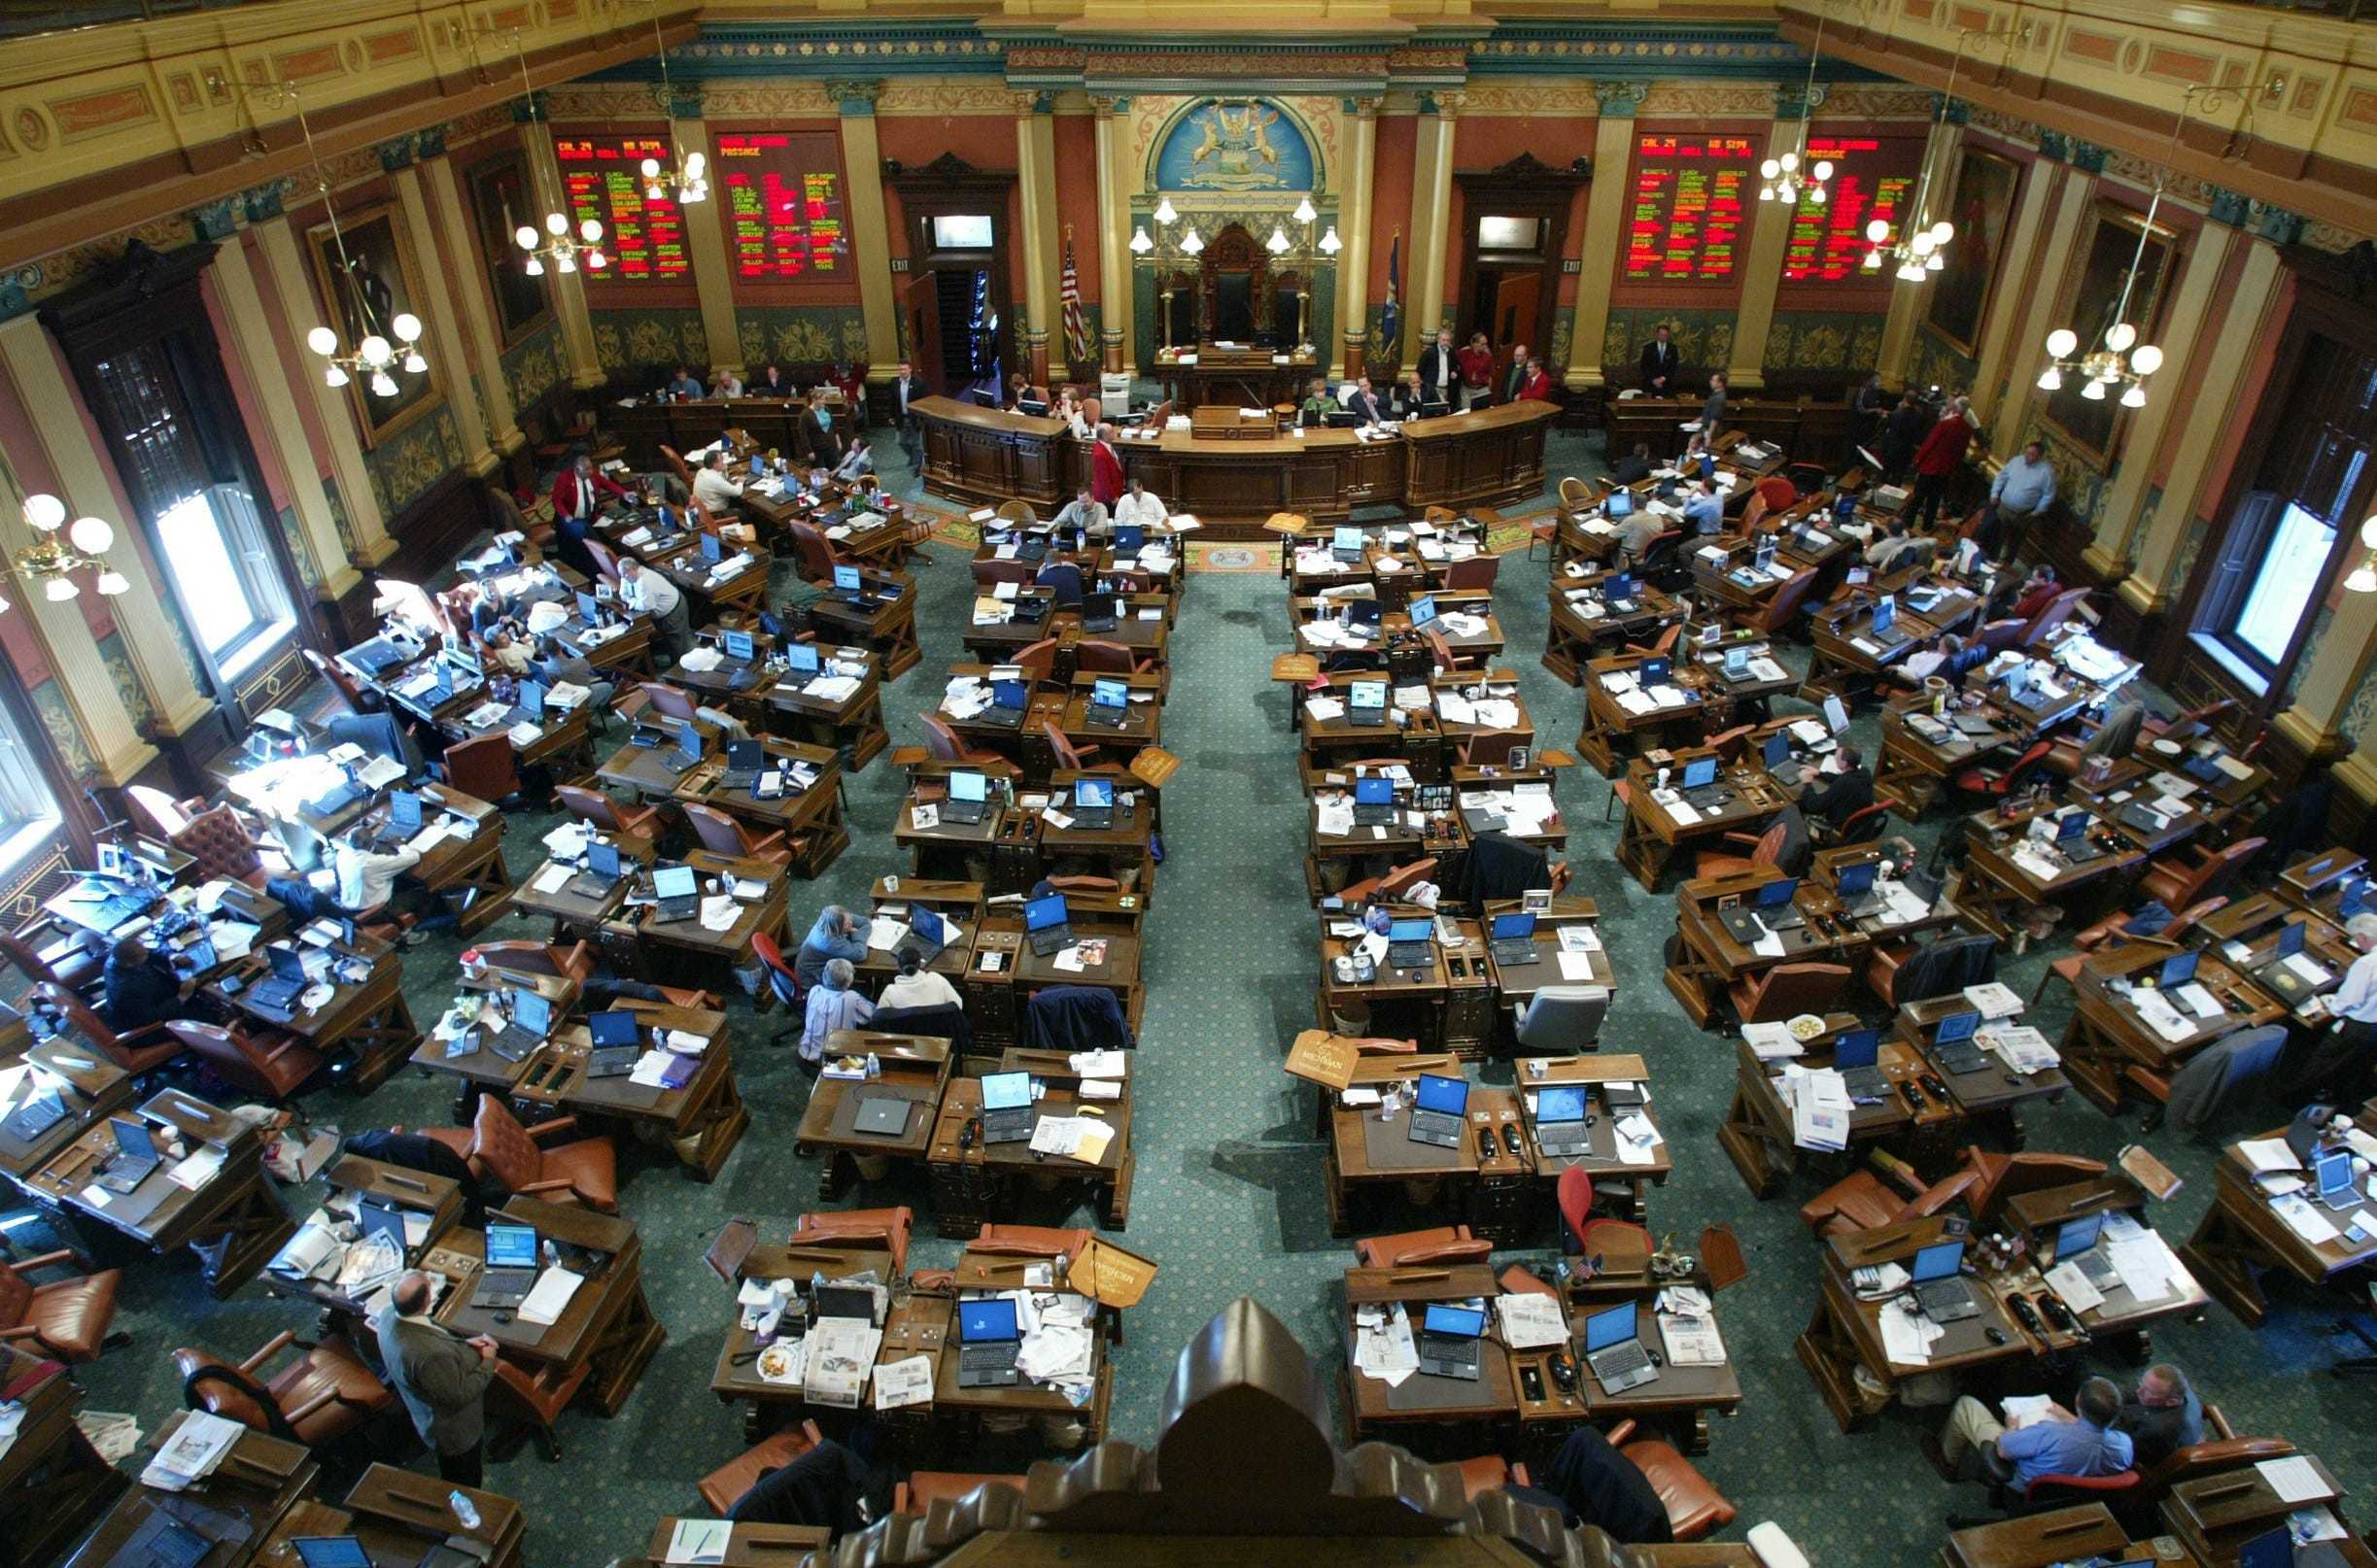 House approves $10M fix to study, address effect of fee cuts in auto insurance law